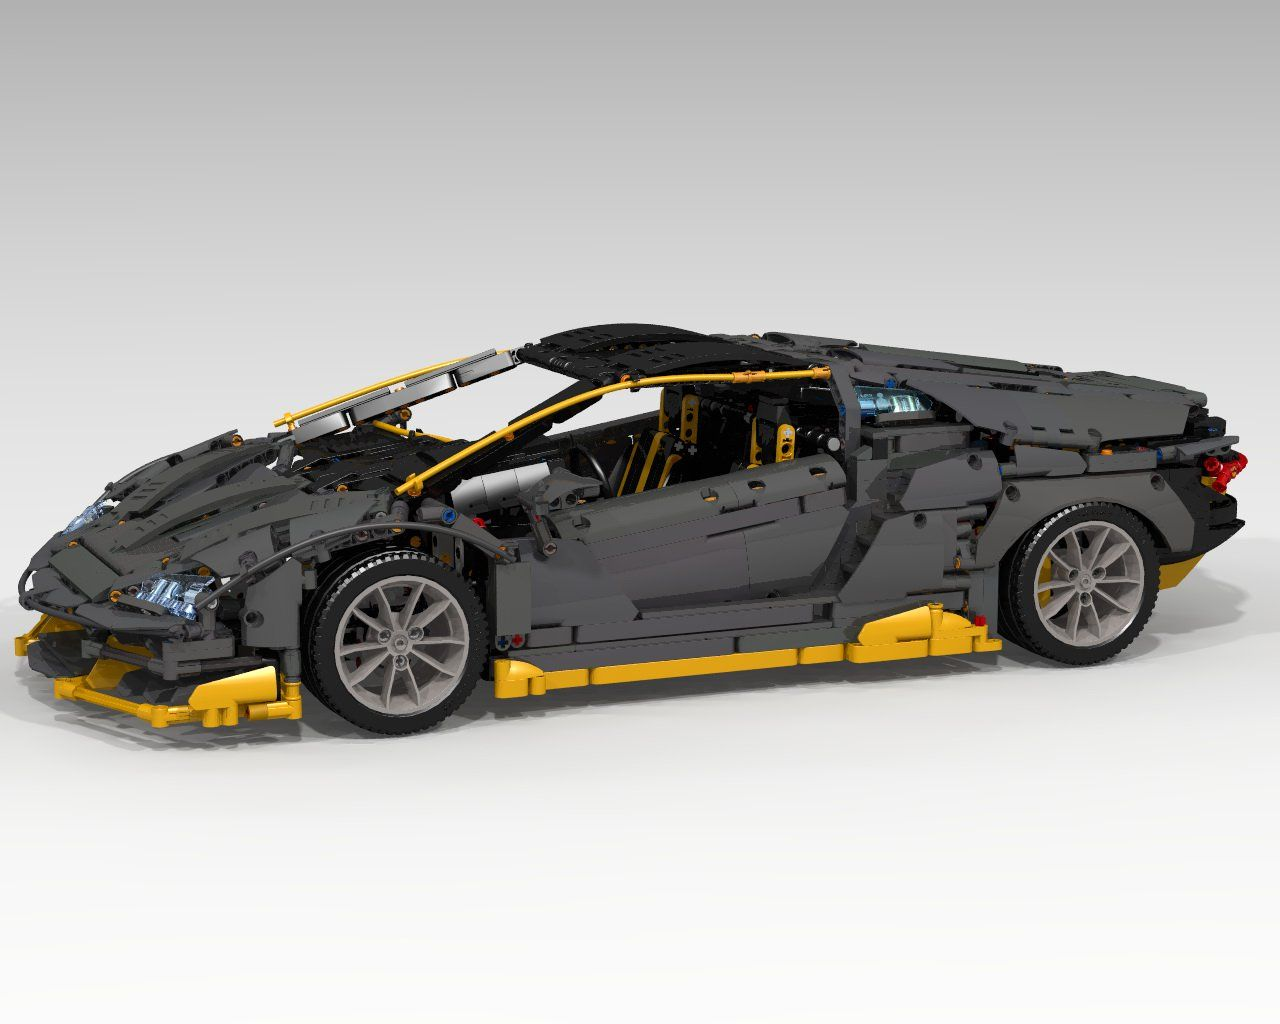 Lego Lamborghini Centenario Wants To Sit On Your Desk Will You Help It Carscoops Lamborghini Centenario Lego Wheels Lego Moc